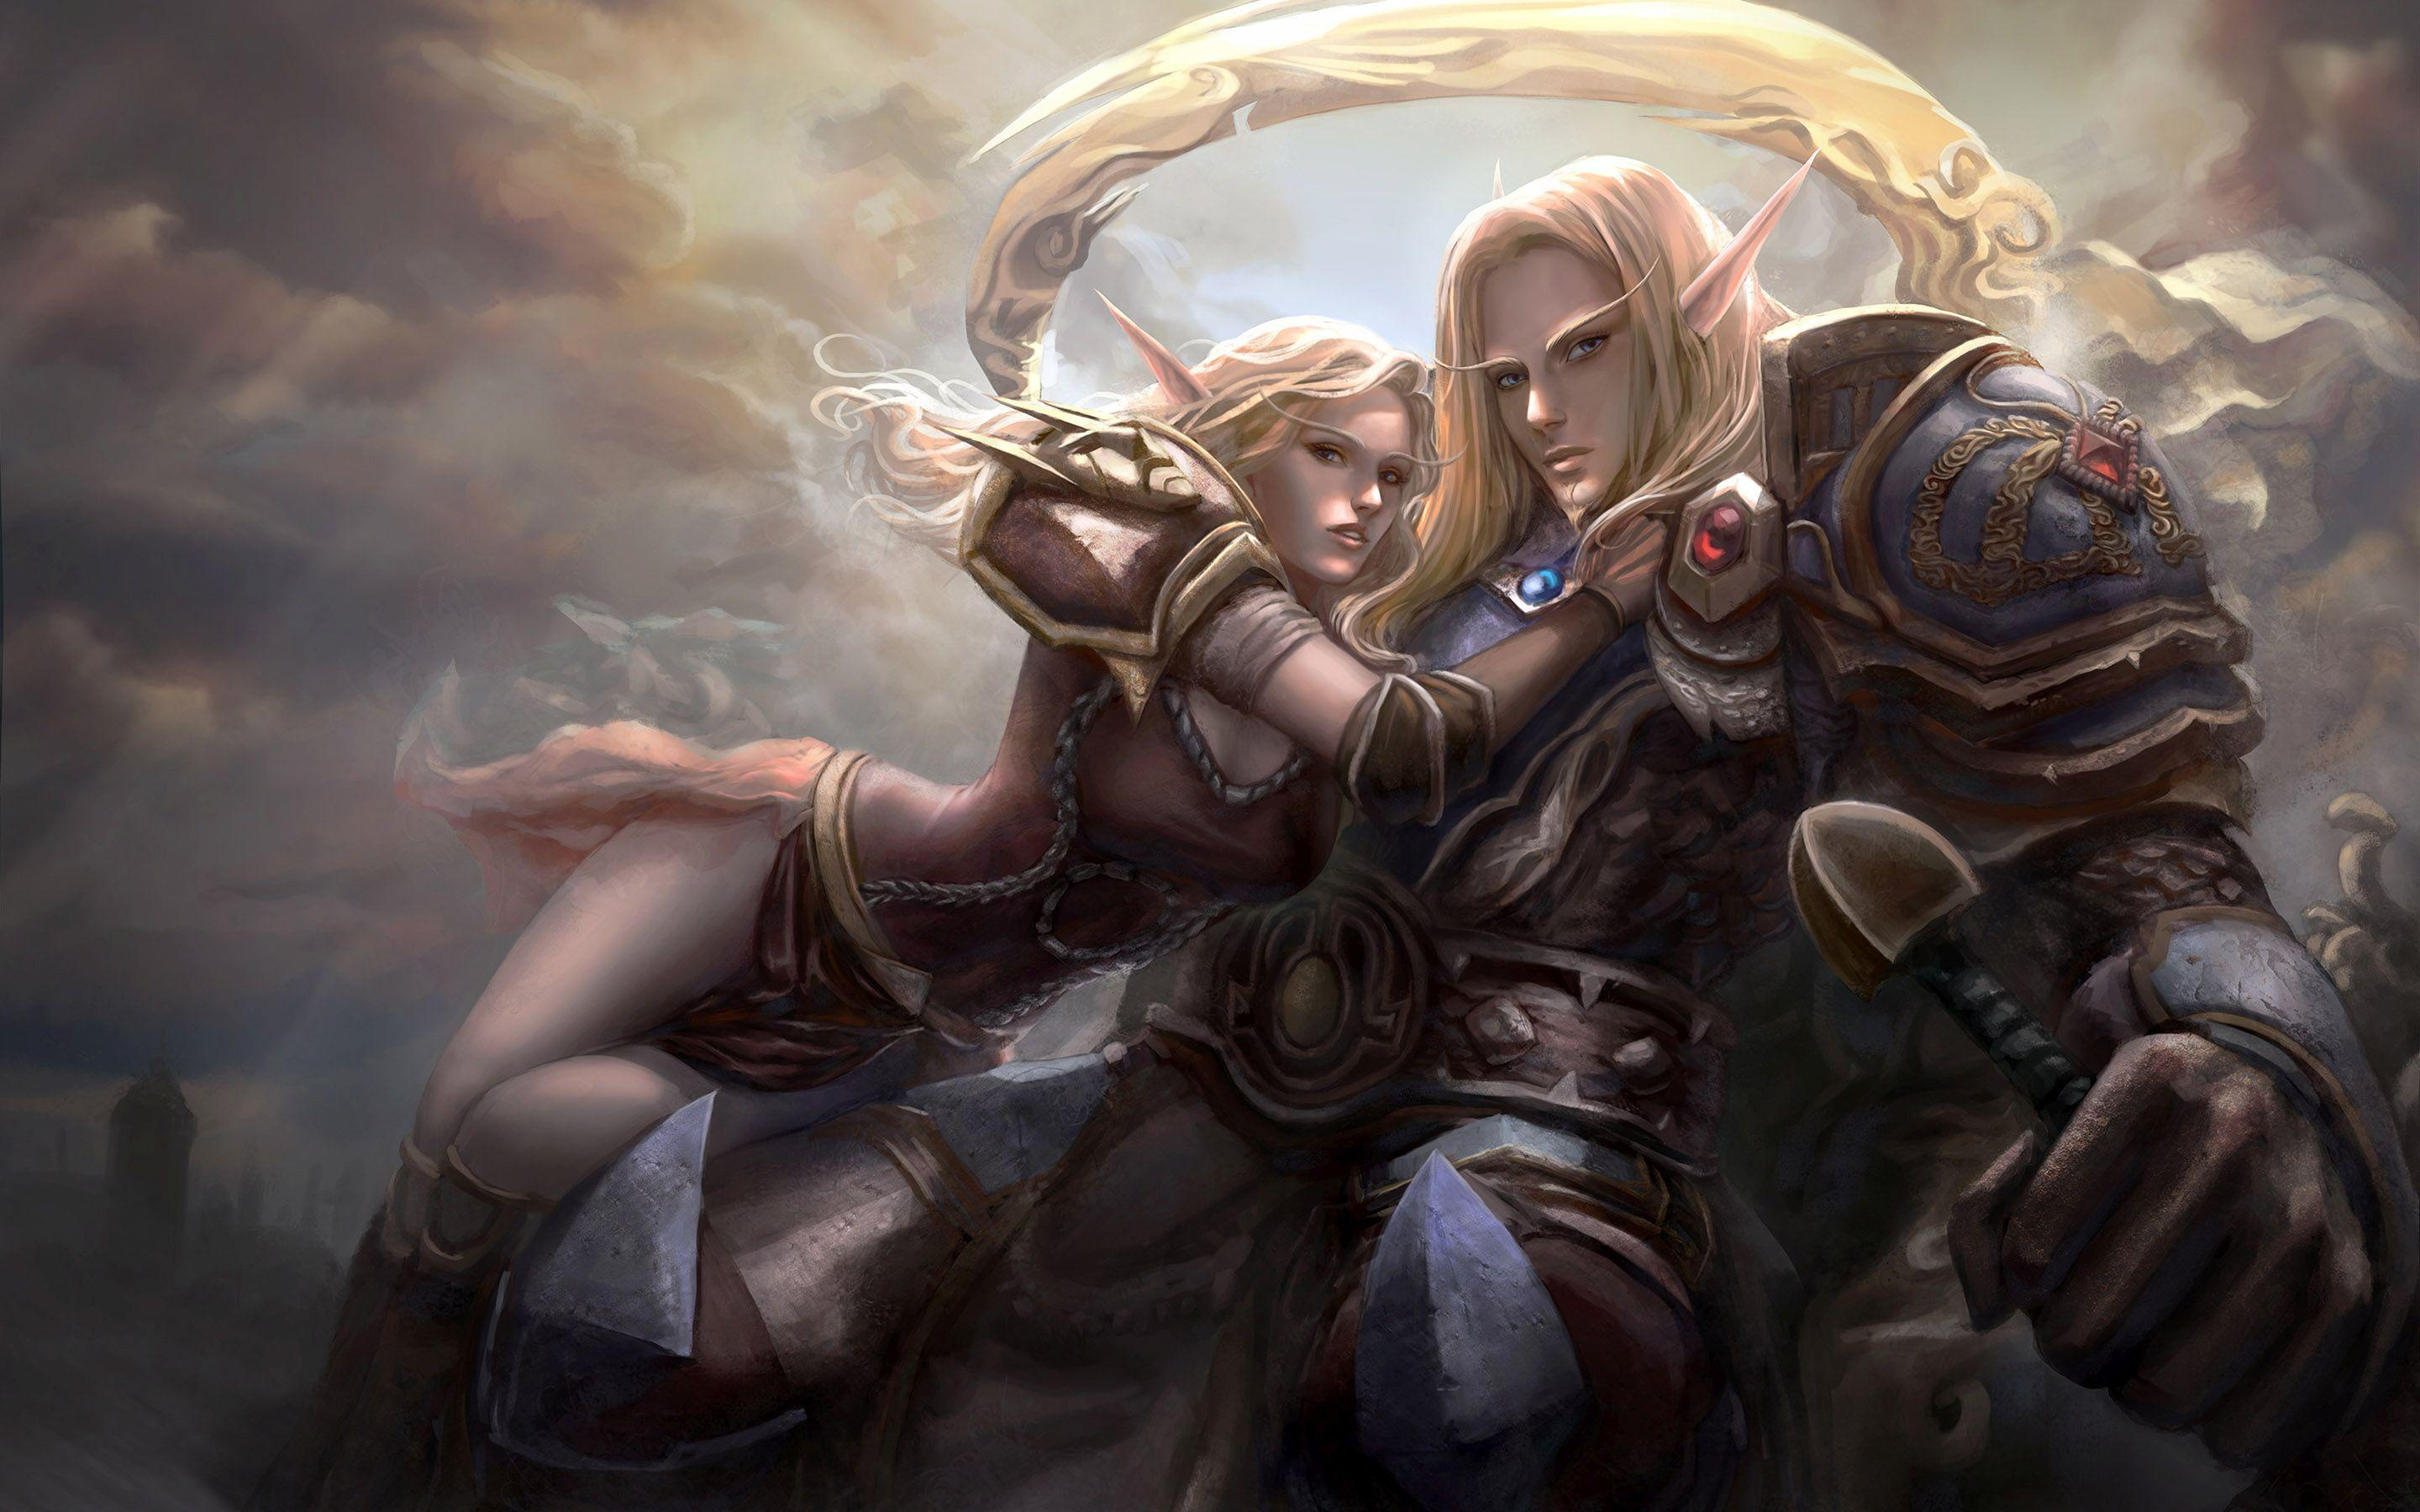 Good Night 3d Wallpapers Free Download Hd World Of Warcraft Elves Wallpaper Download Free 150029